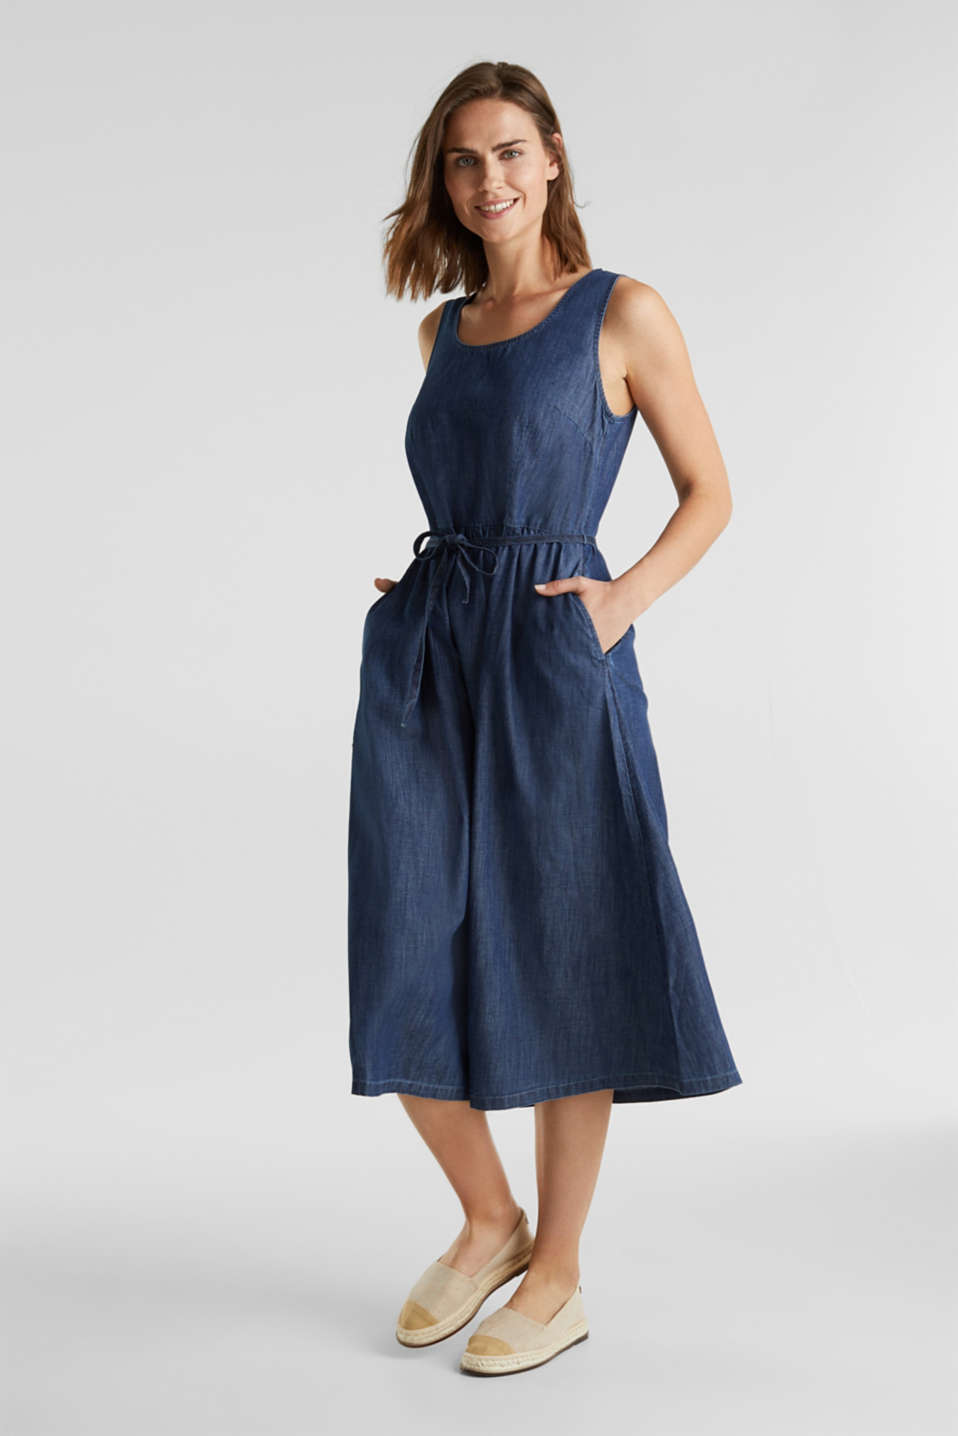 Esprit - Cotton denim dress